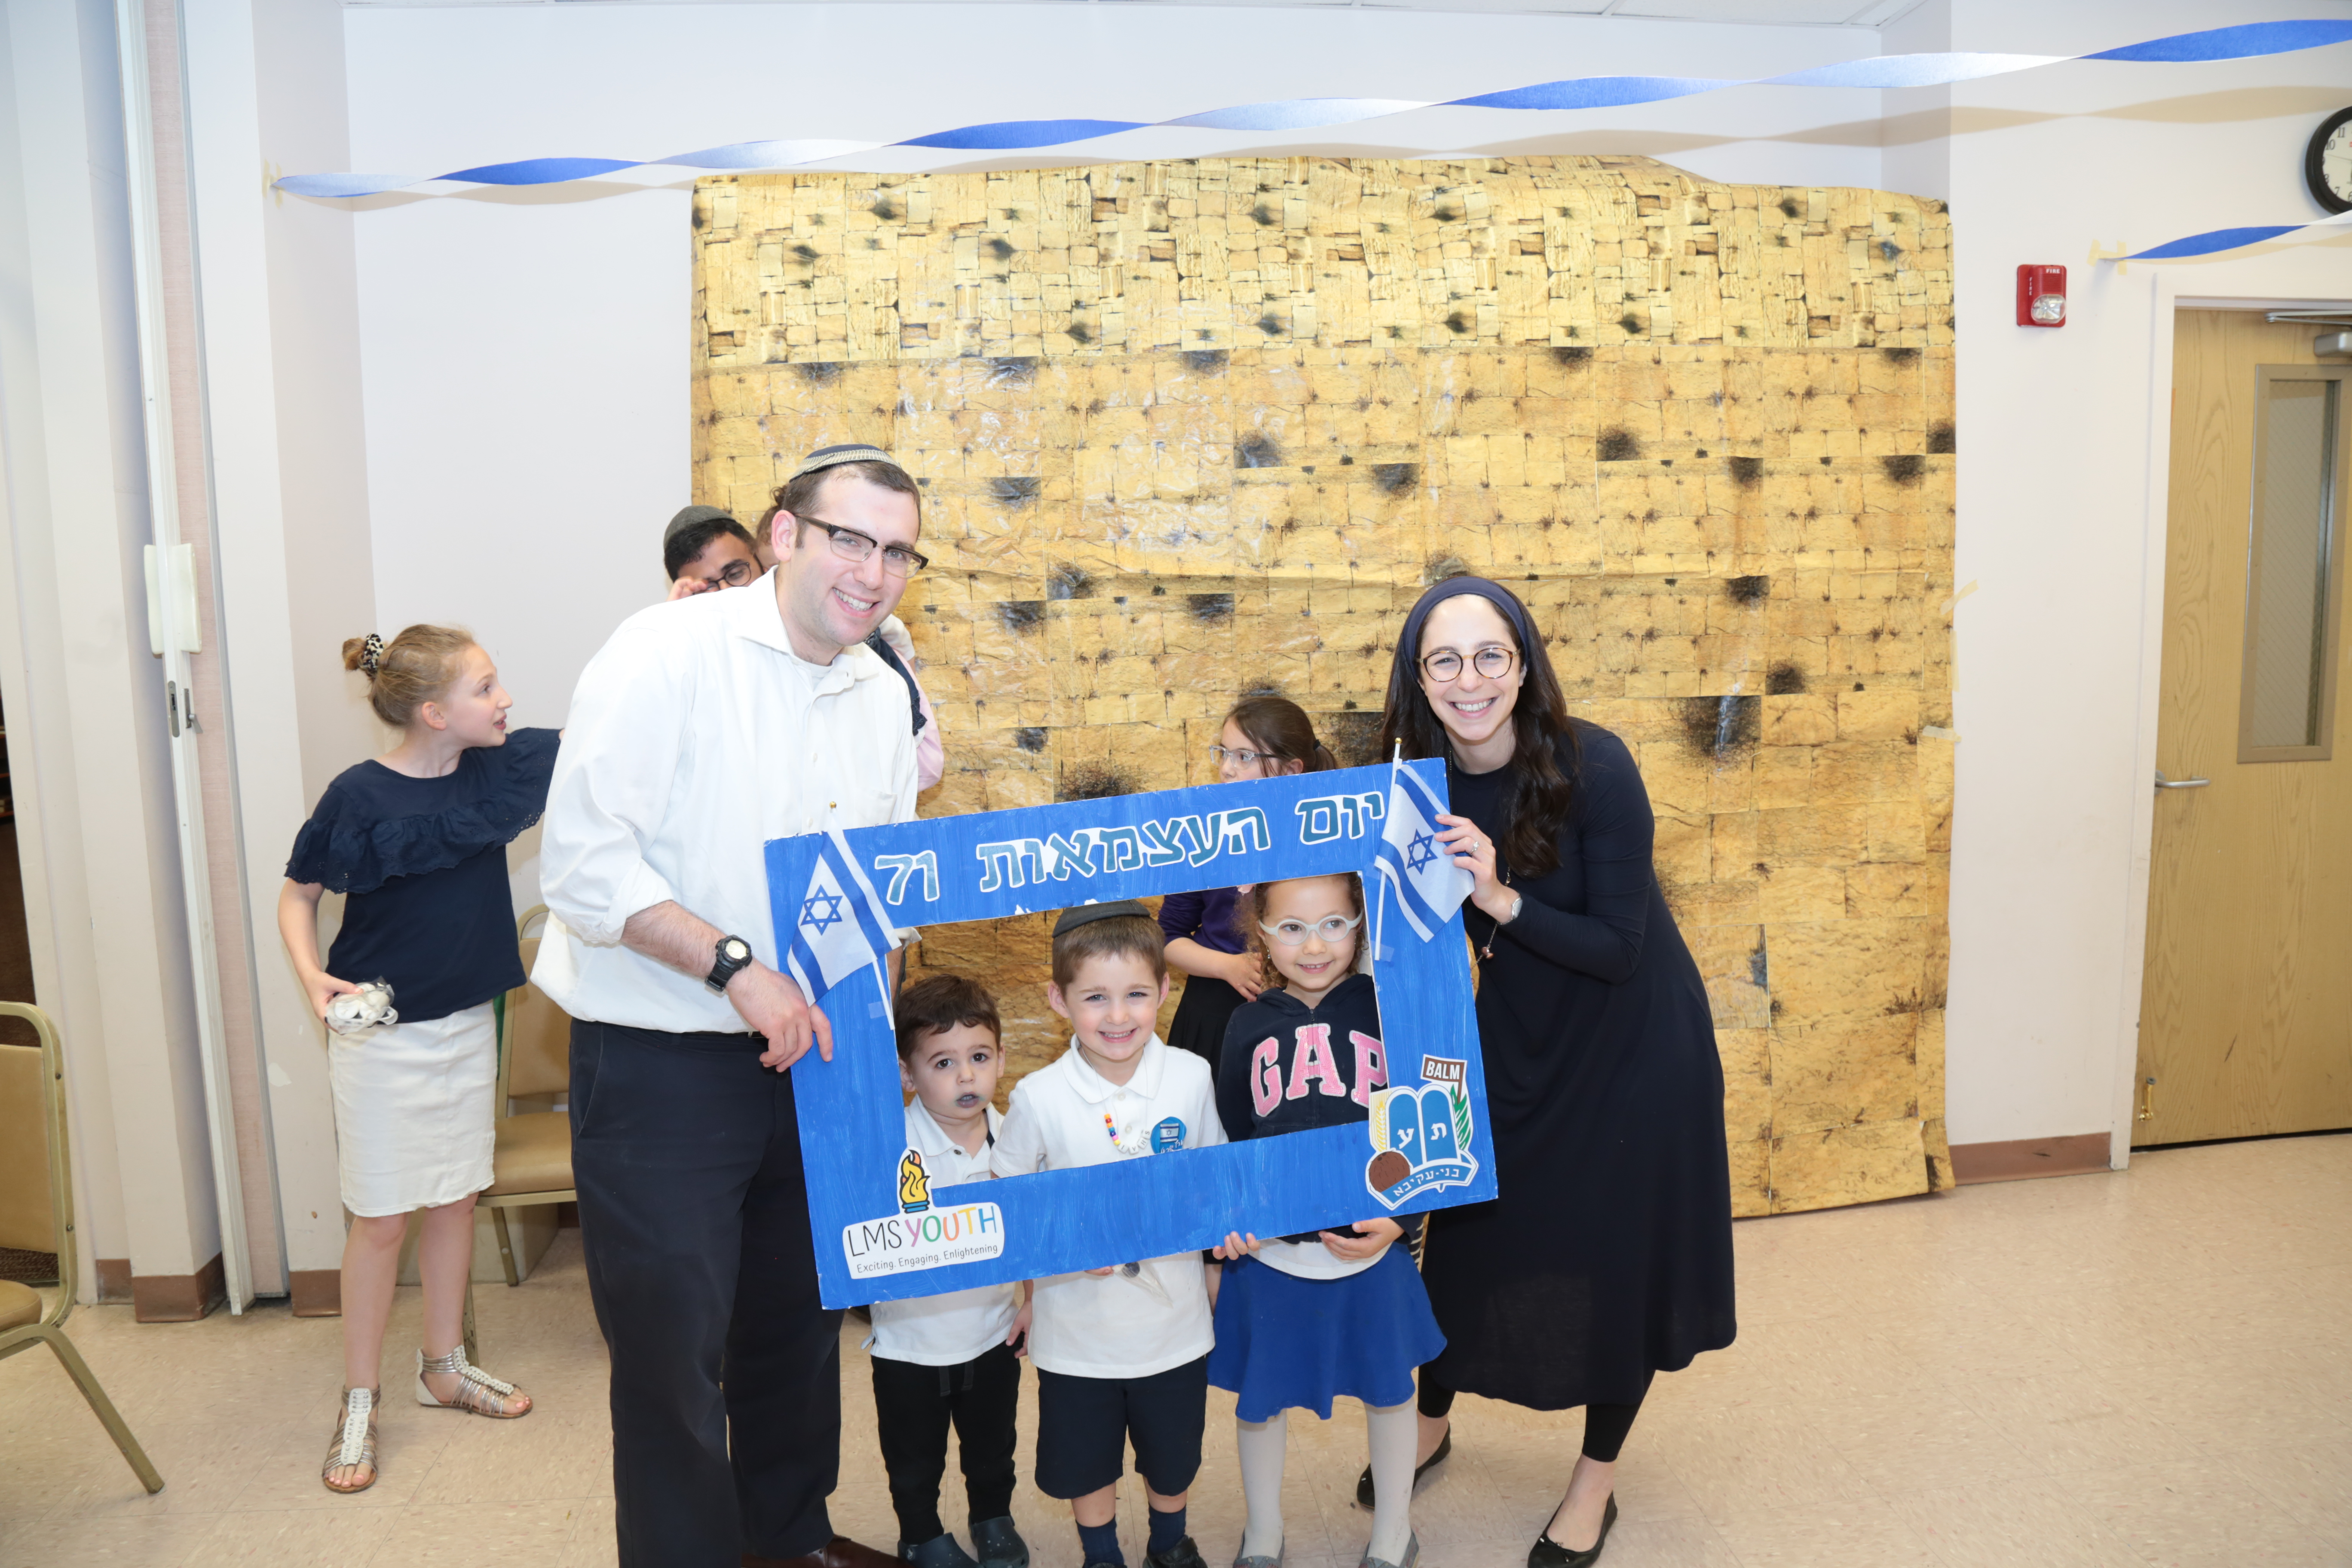 """<a href=""""/donate""""                                     target="""""""">                                                                 <span class=""""slider_title"""">                                     DONATE/SPONSOR                                </span>                                                                 </a>                                                                                                                                                                                       <span class=""""slider_description"""">Your gift helps us to build a Jewish legacy for future generations.</span>                                                                                     <a href=""""/donate"""" class=""""slider_link""""                             target="""""""">                             Support Us                            </a>"""